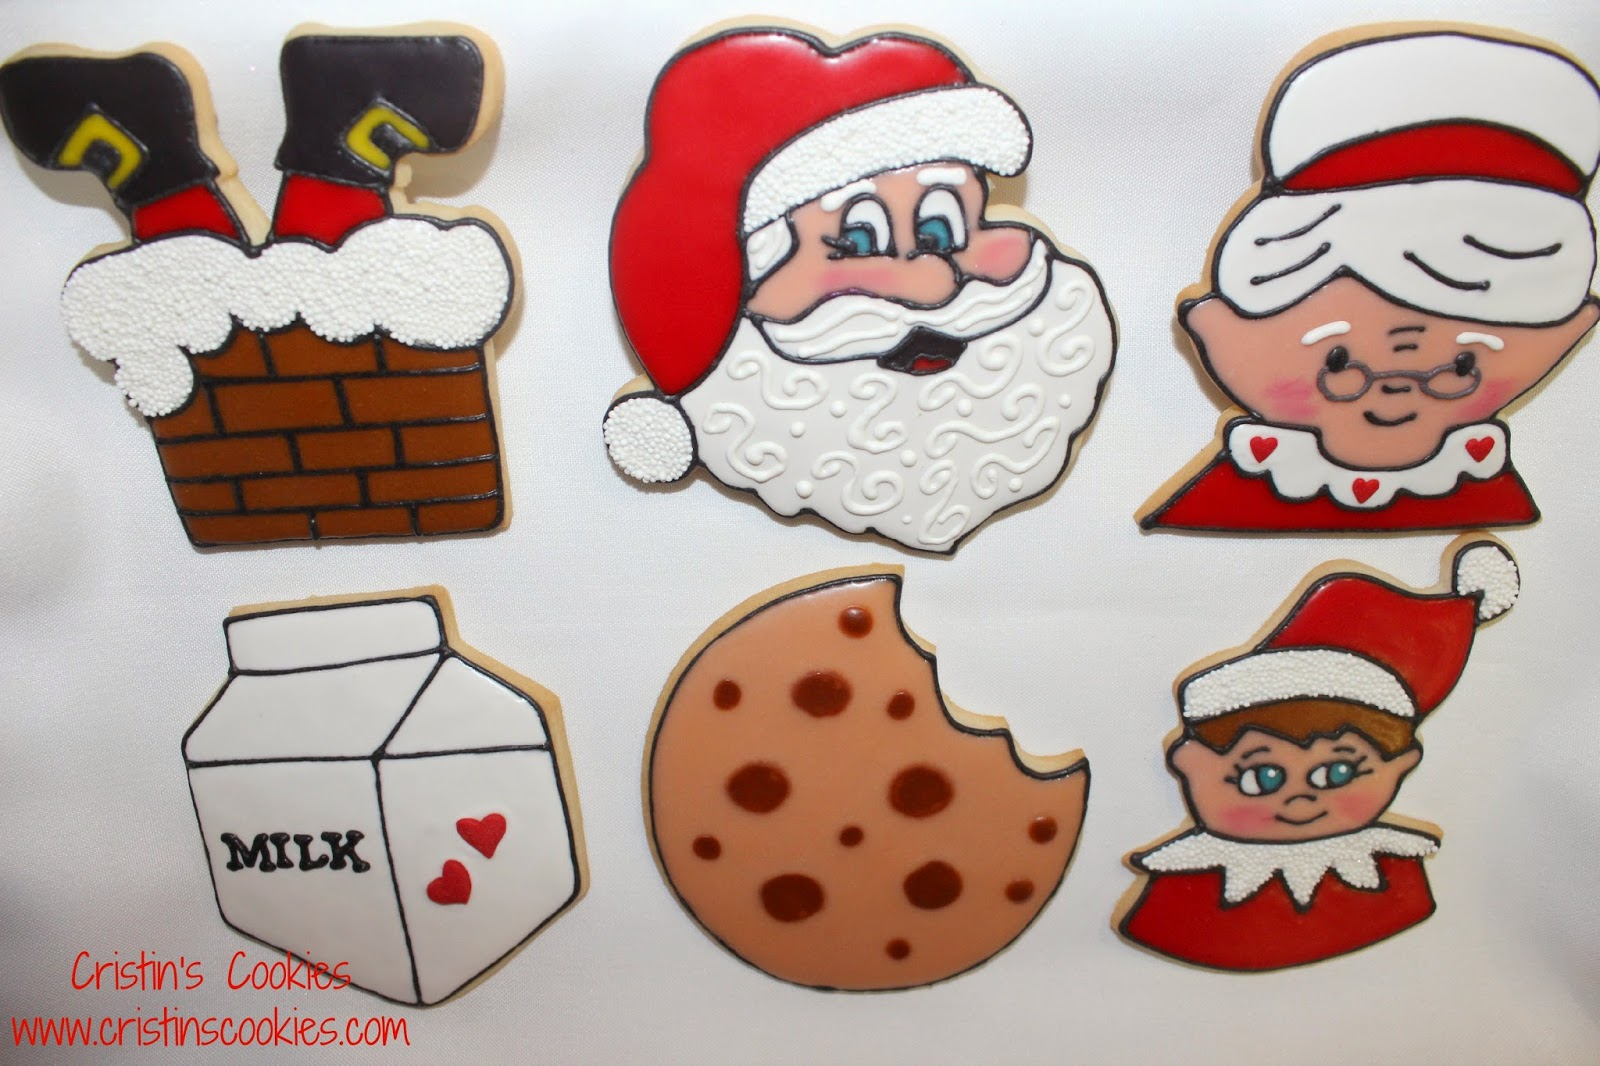 Cristin\'s Cookies: Is It Christmas Yet - Santa Cookies and an Elf too